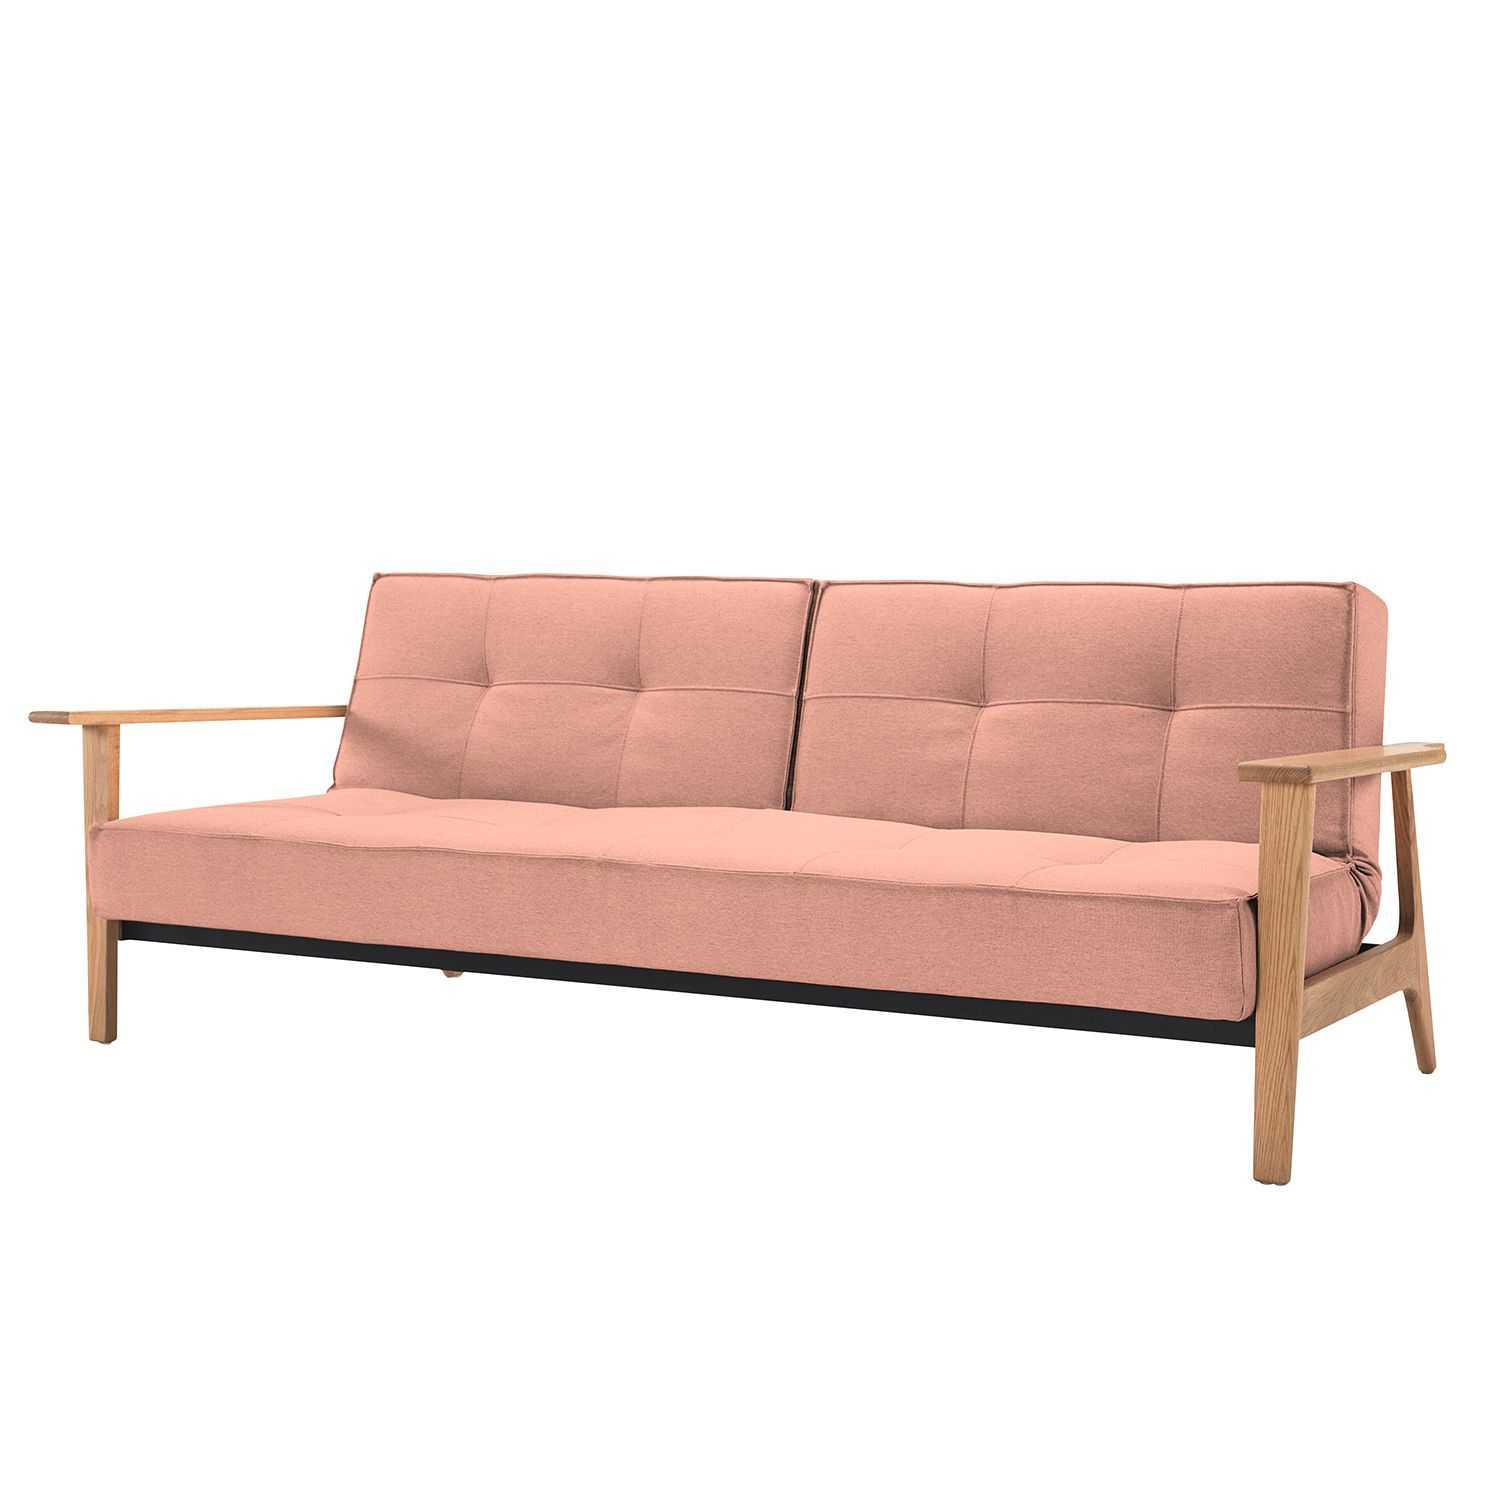 Canapé convertible Splitback Frej I - Tissu - Tissu 557 Soft Coral, Innovation Möbel